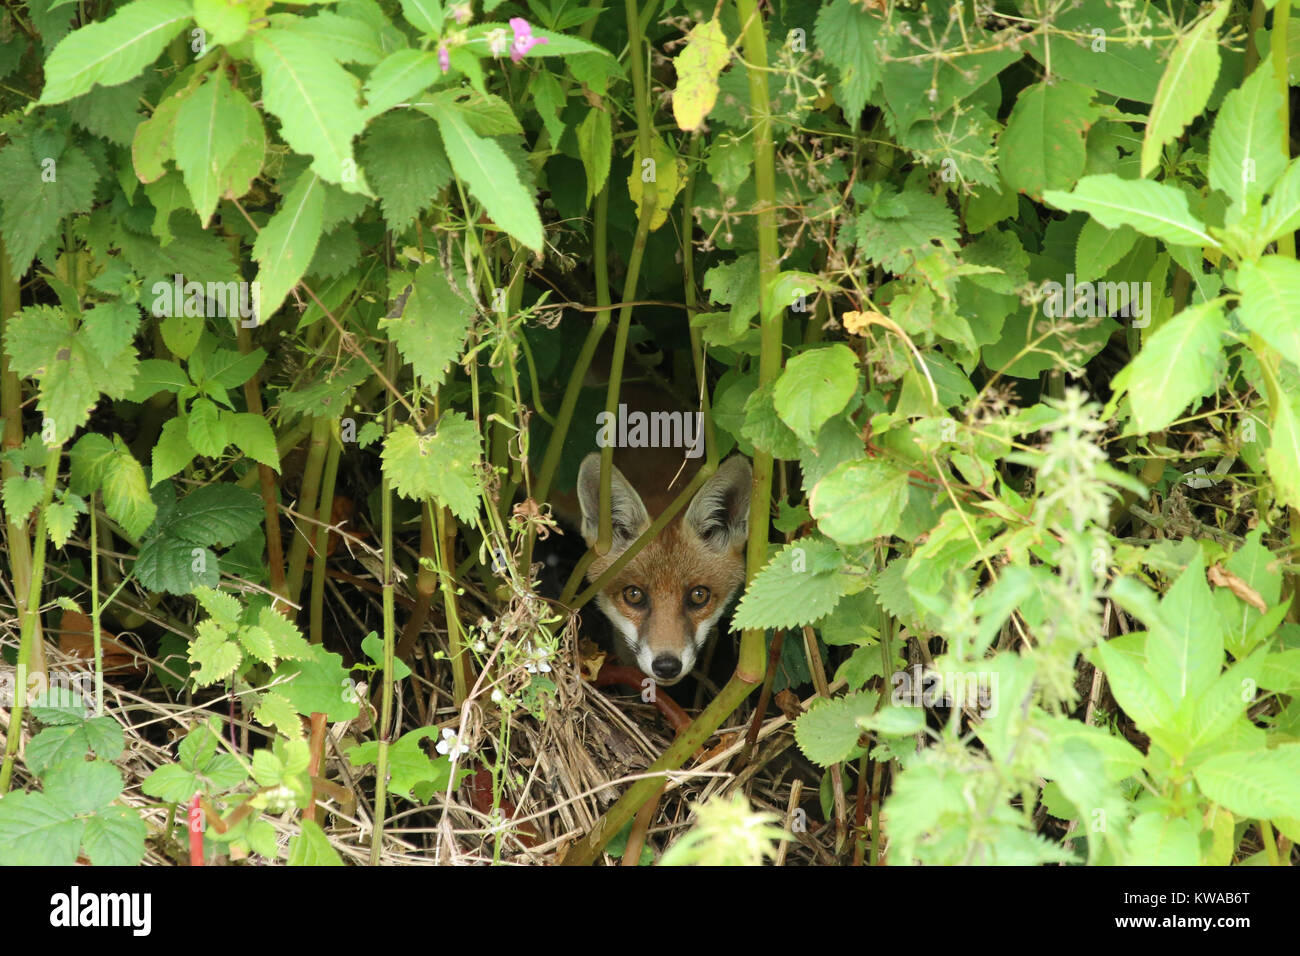 A red fox, Vulpes vulpes, cautiously peers out from its position of concealment amongst the undergrowth. - Stock Image